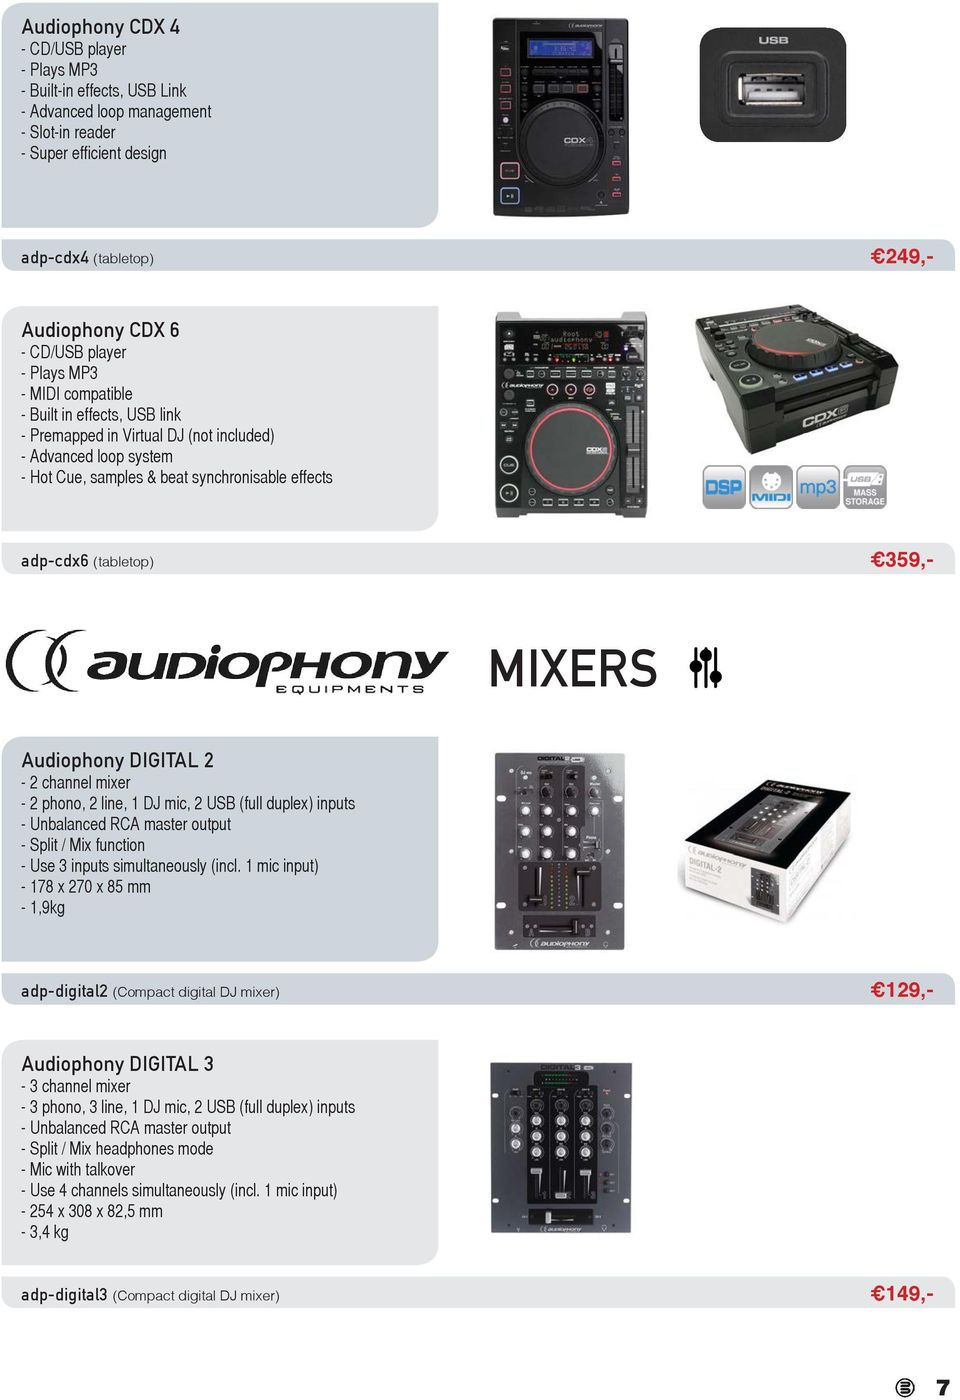 359,- MIXERS Audiophony DIGITAL 2-2 channel mixer - 2 phono, 2 line, 1 DJ mic, 2 USB (full duplex) inputs - Unbalanced RCA master output - Split / Mix function - Use 3 inputs simultaneously (incl.